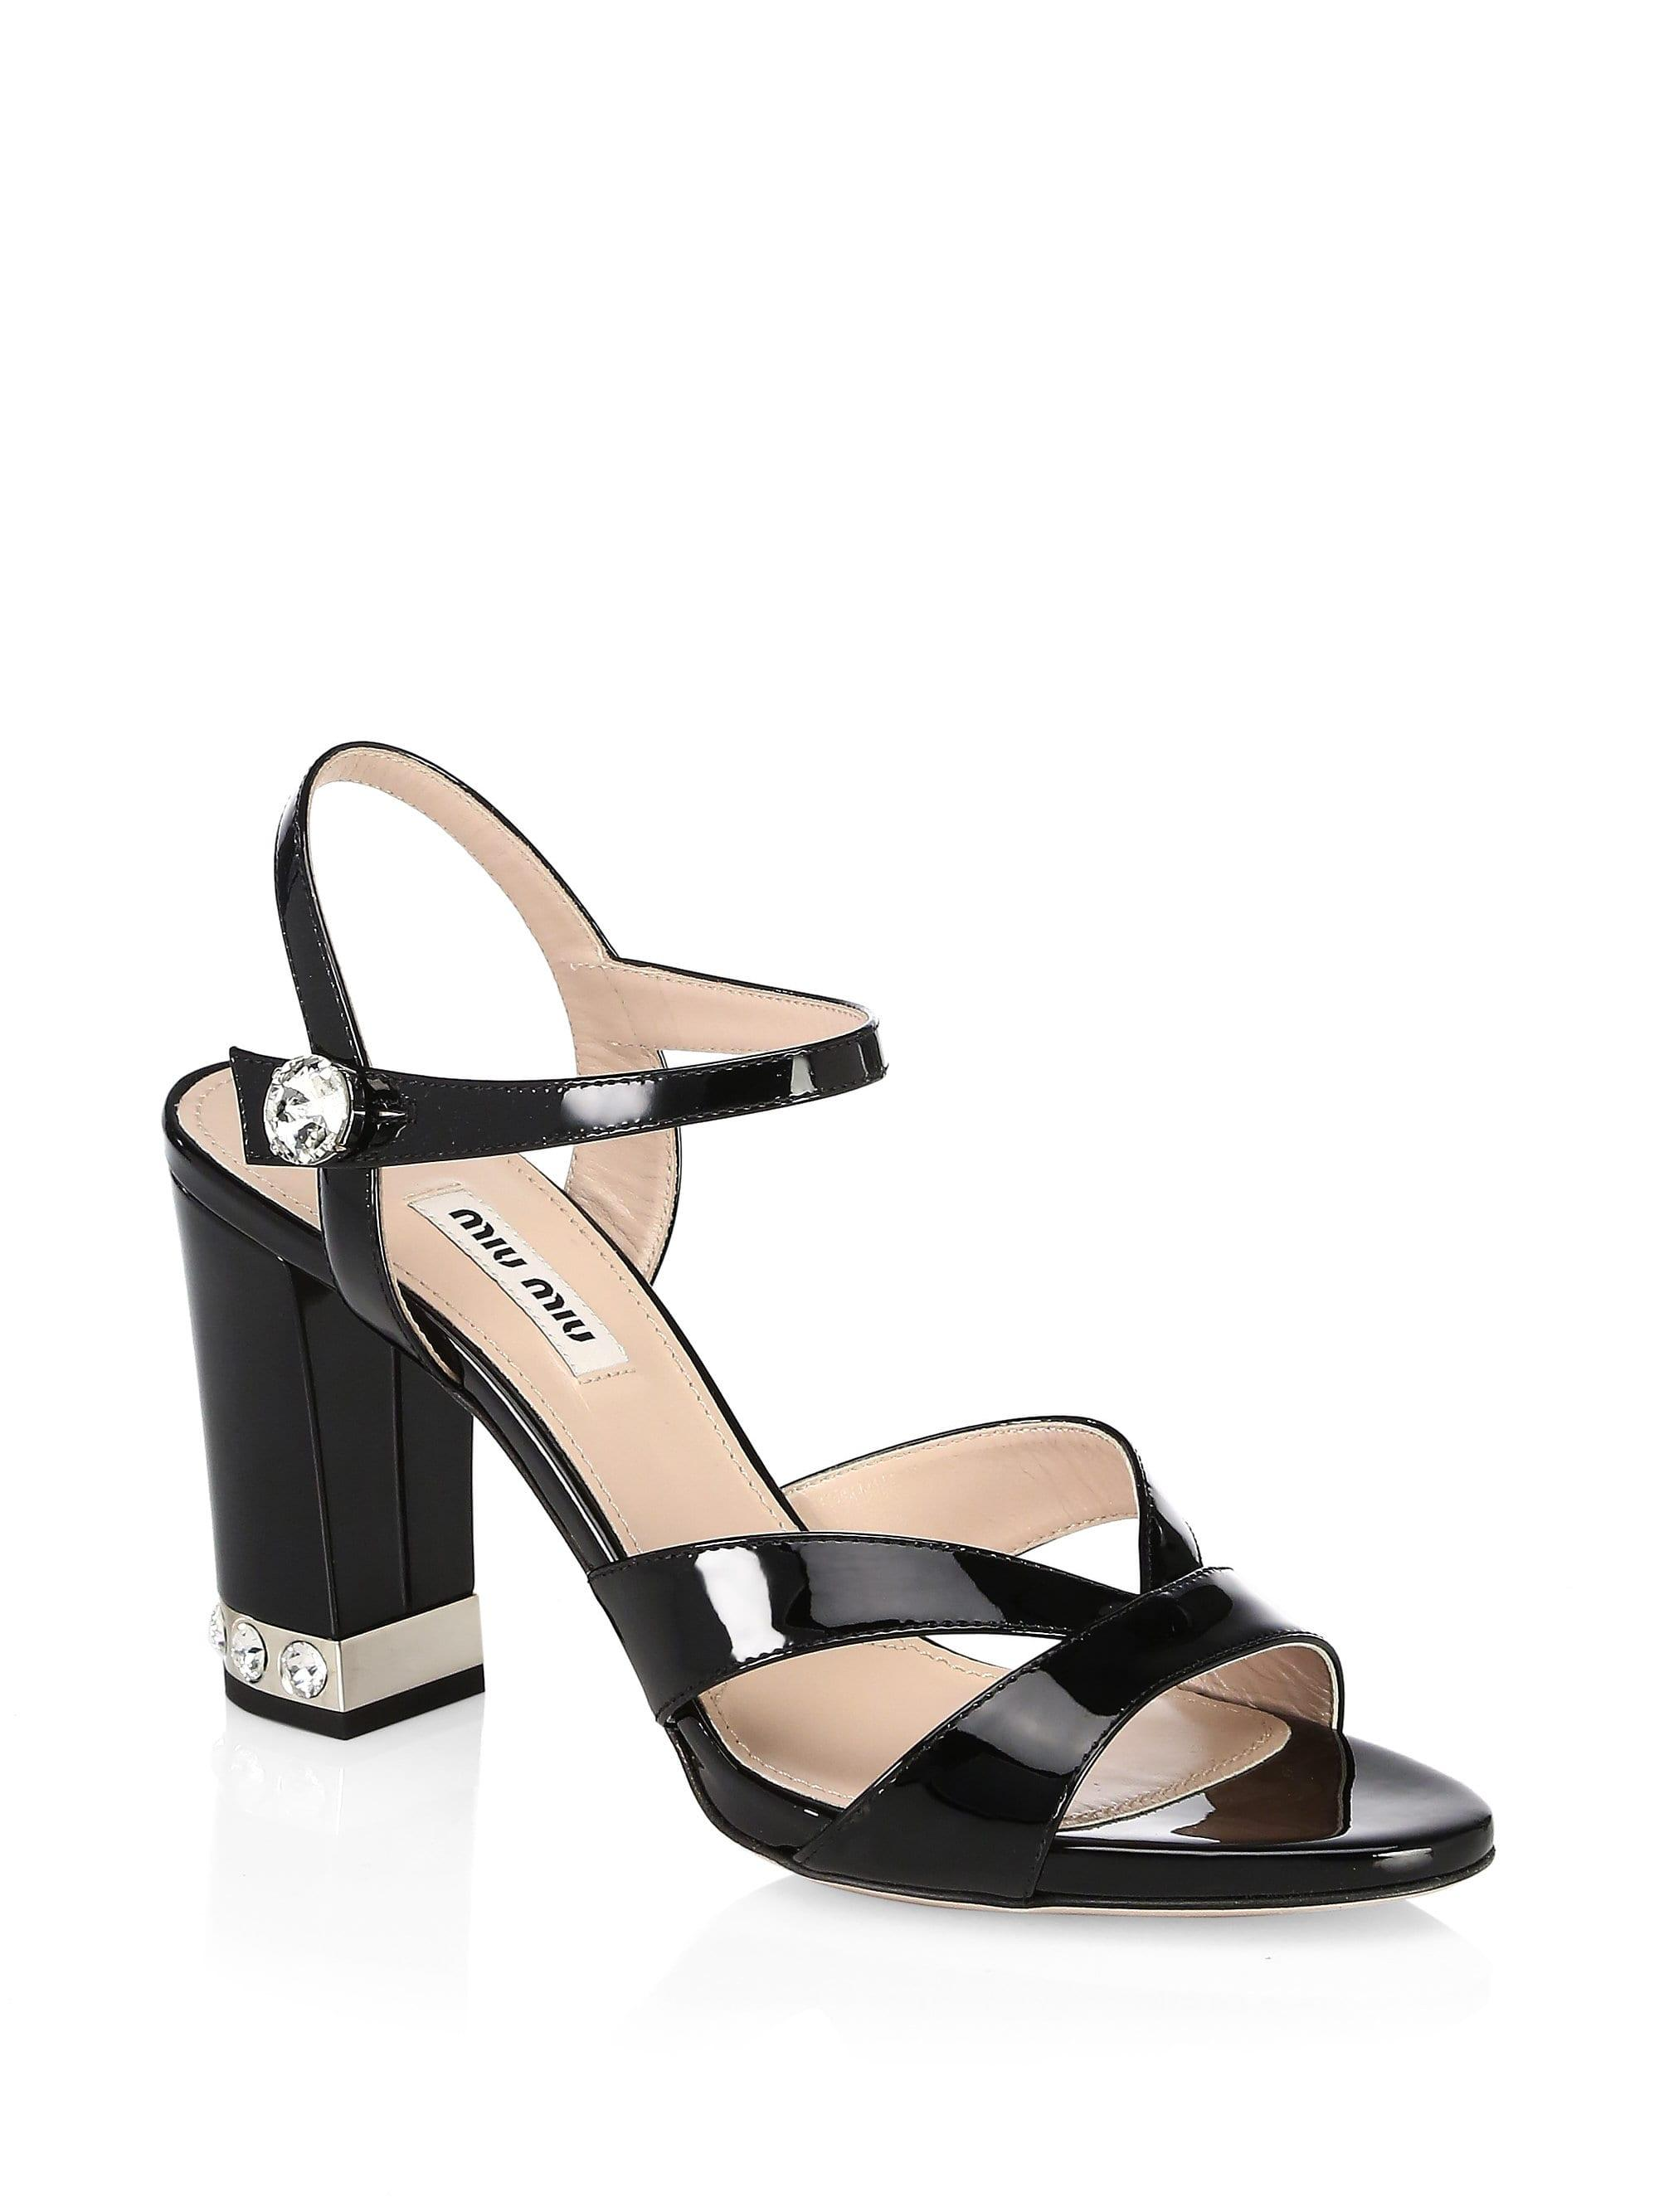 5a3948f3001 Lyst - Miu Miu Crystal-embellished Leather Slingback Sandals in Black